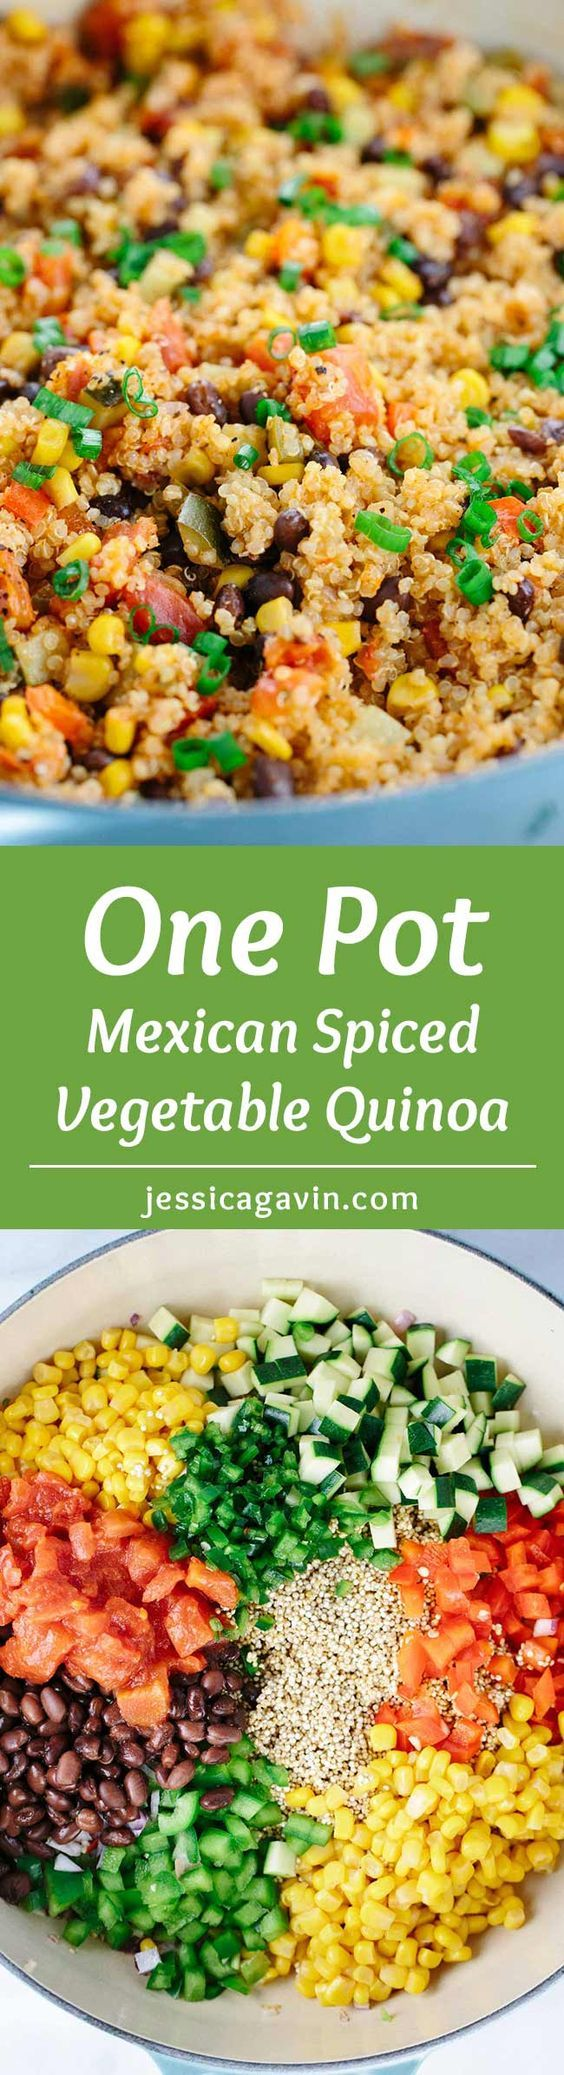 One Pot Mexican Spiced Vegetable Quinoa - This recipe is loaded with bold flavors and healthy ingredients like protein, fiber, and vegetables in each delicious spoonful. | jessicagavin.com